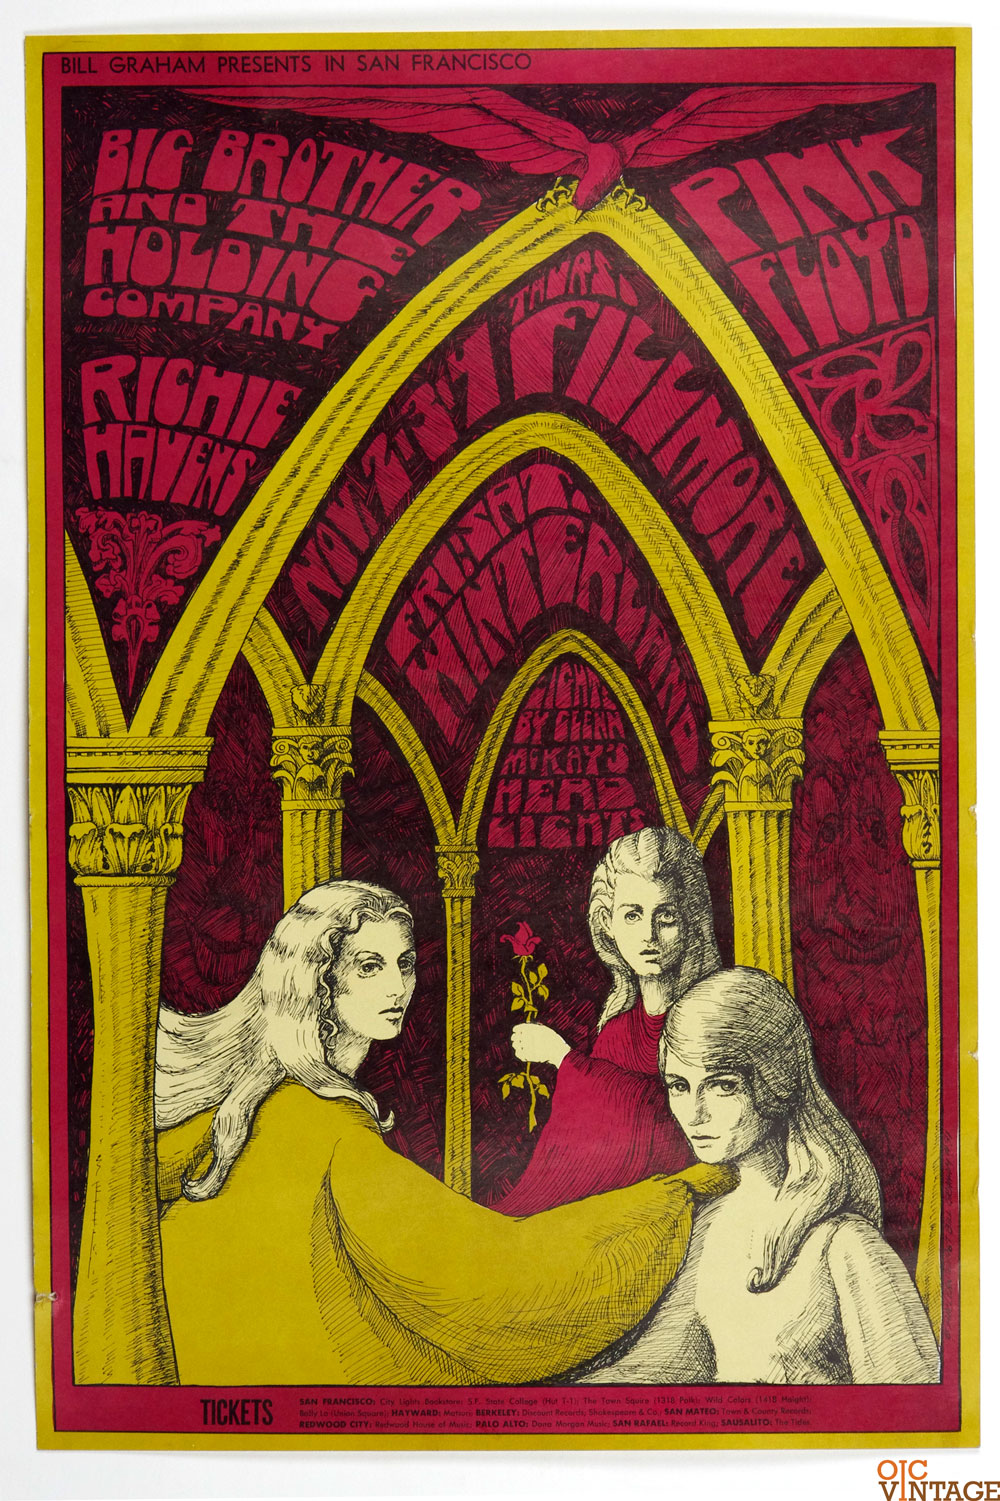 Bill Graham  91 Poster Pink Floyd Big Brother and The Holding co 1967 Nov 2